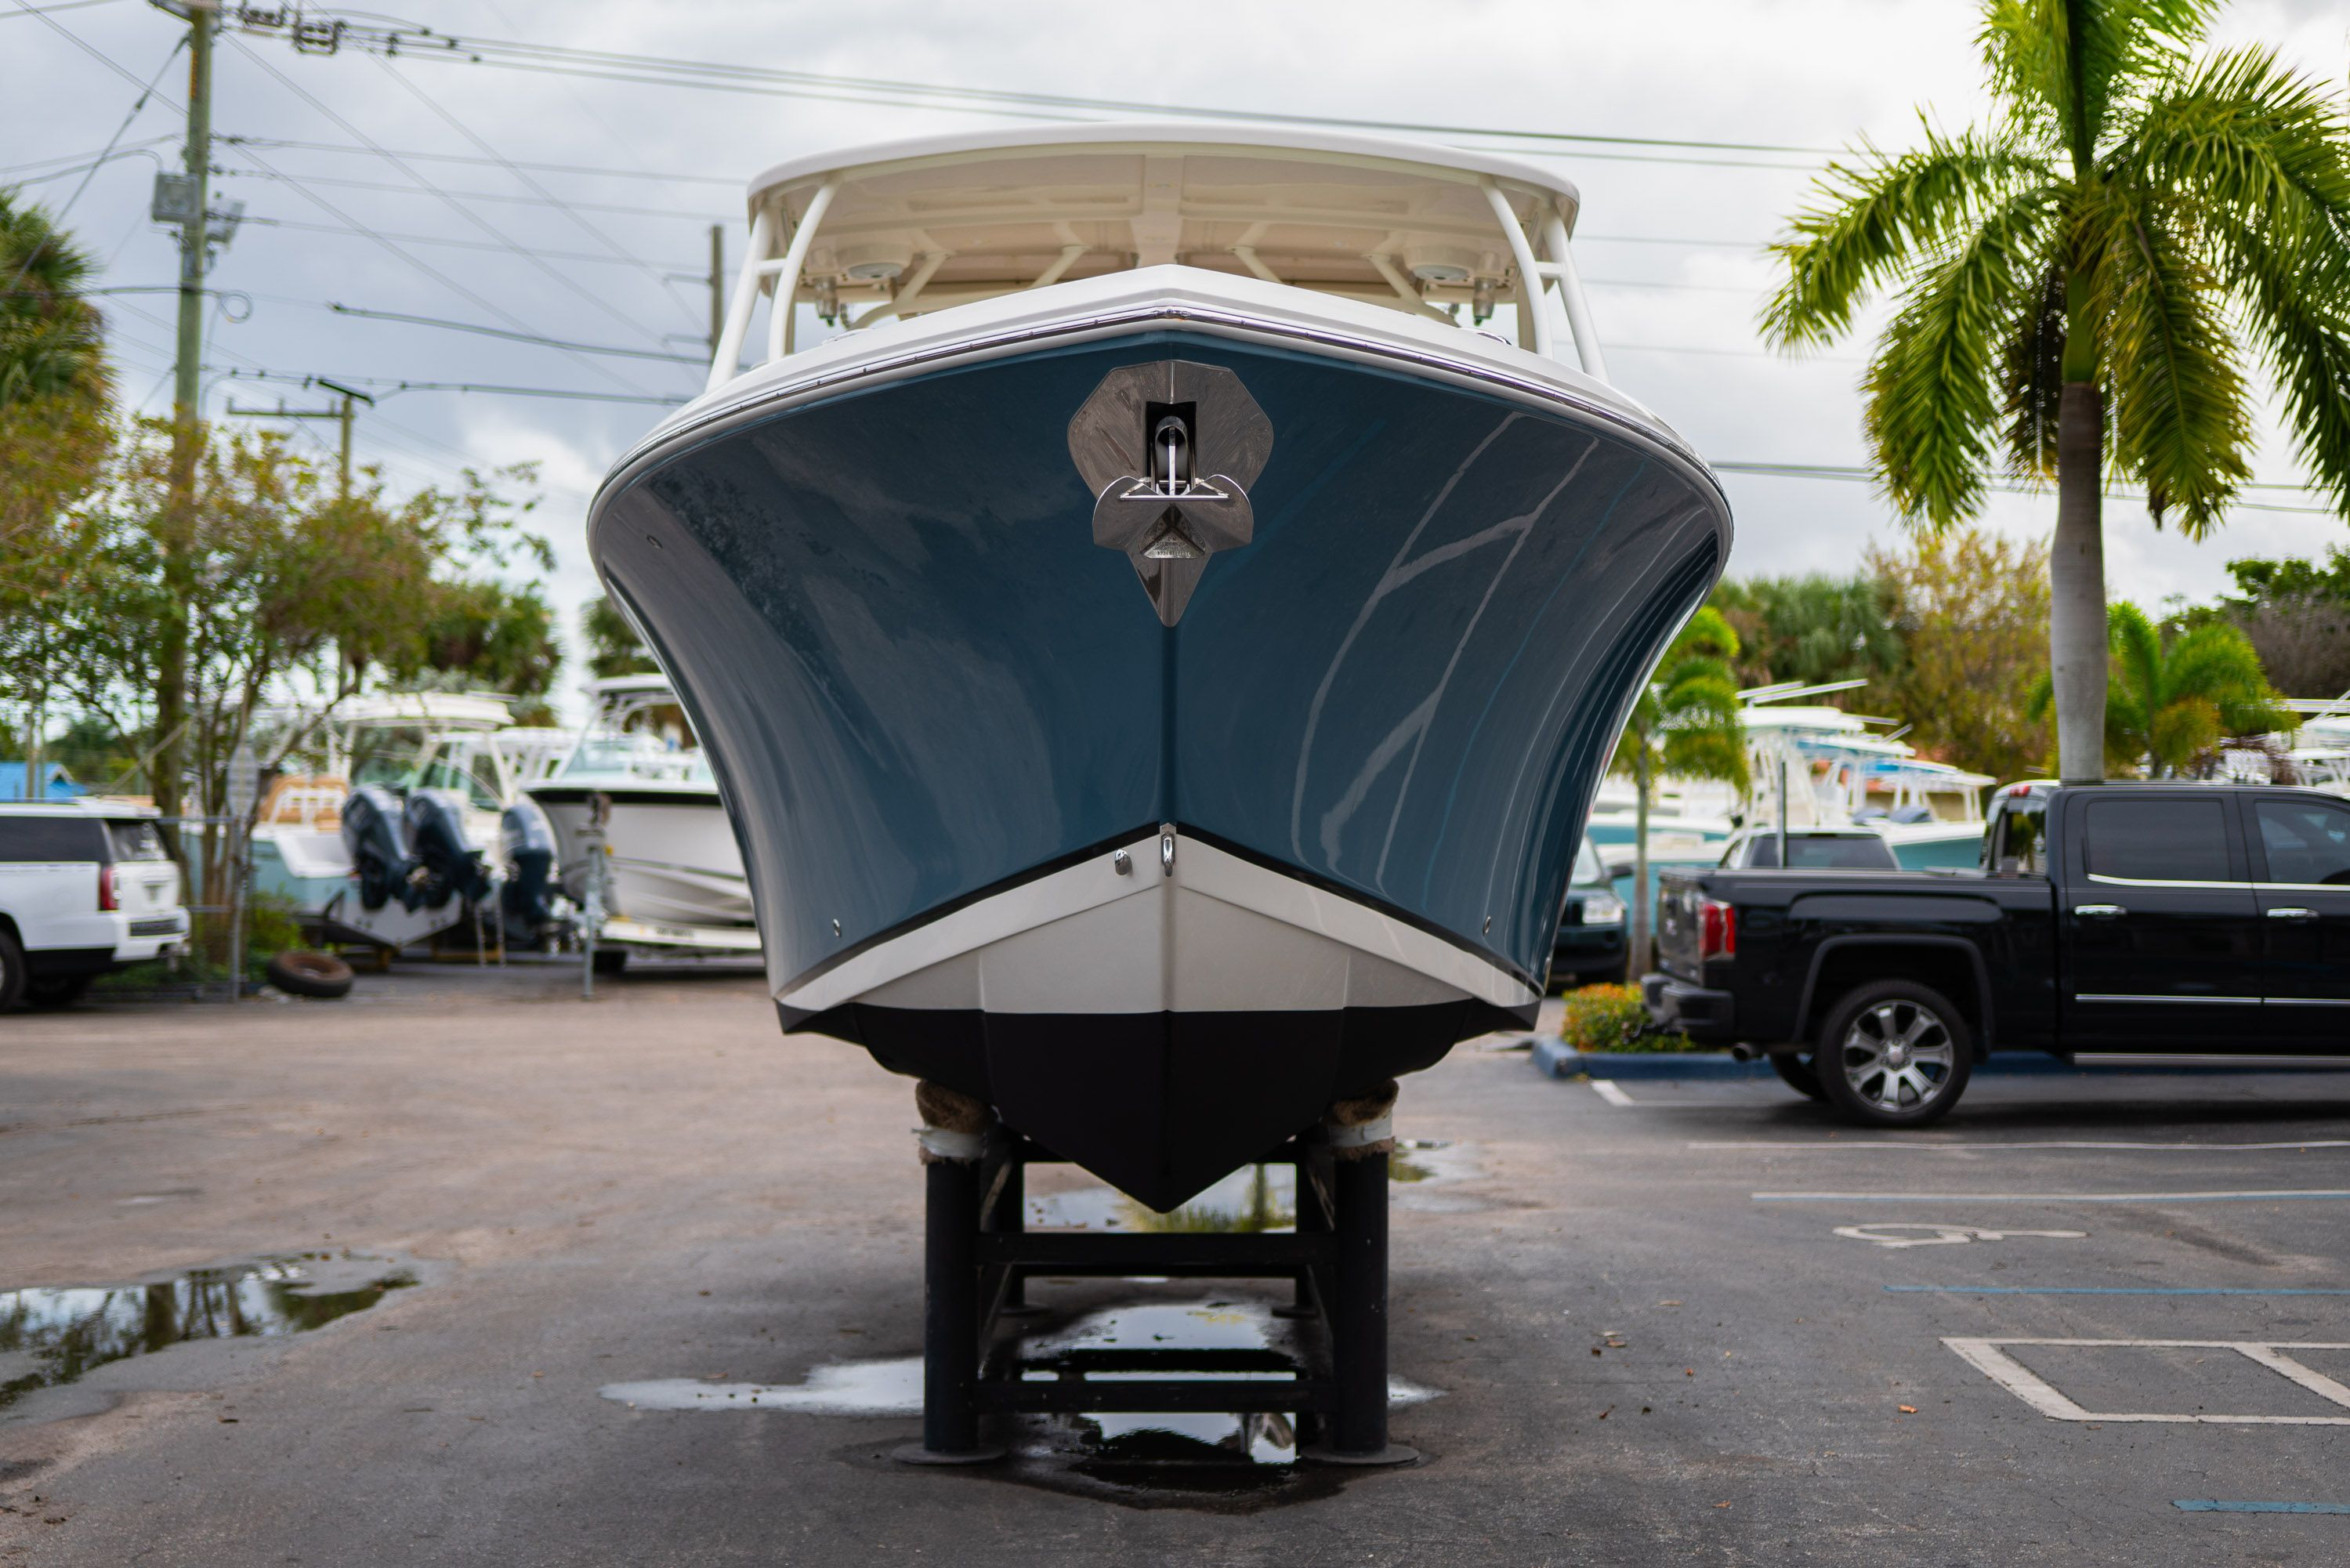 Thumbnail 2 for Used 2017 Sailfish 275 Dual Console boat for sale in West Palm Beach, FL